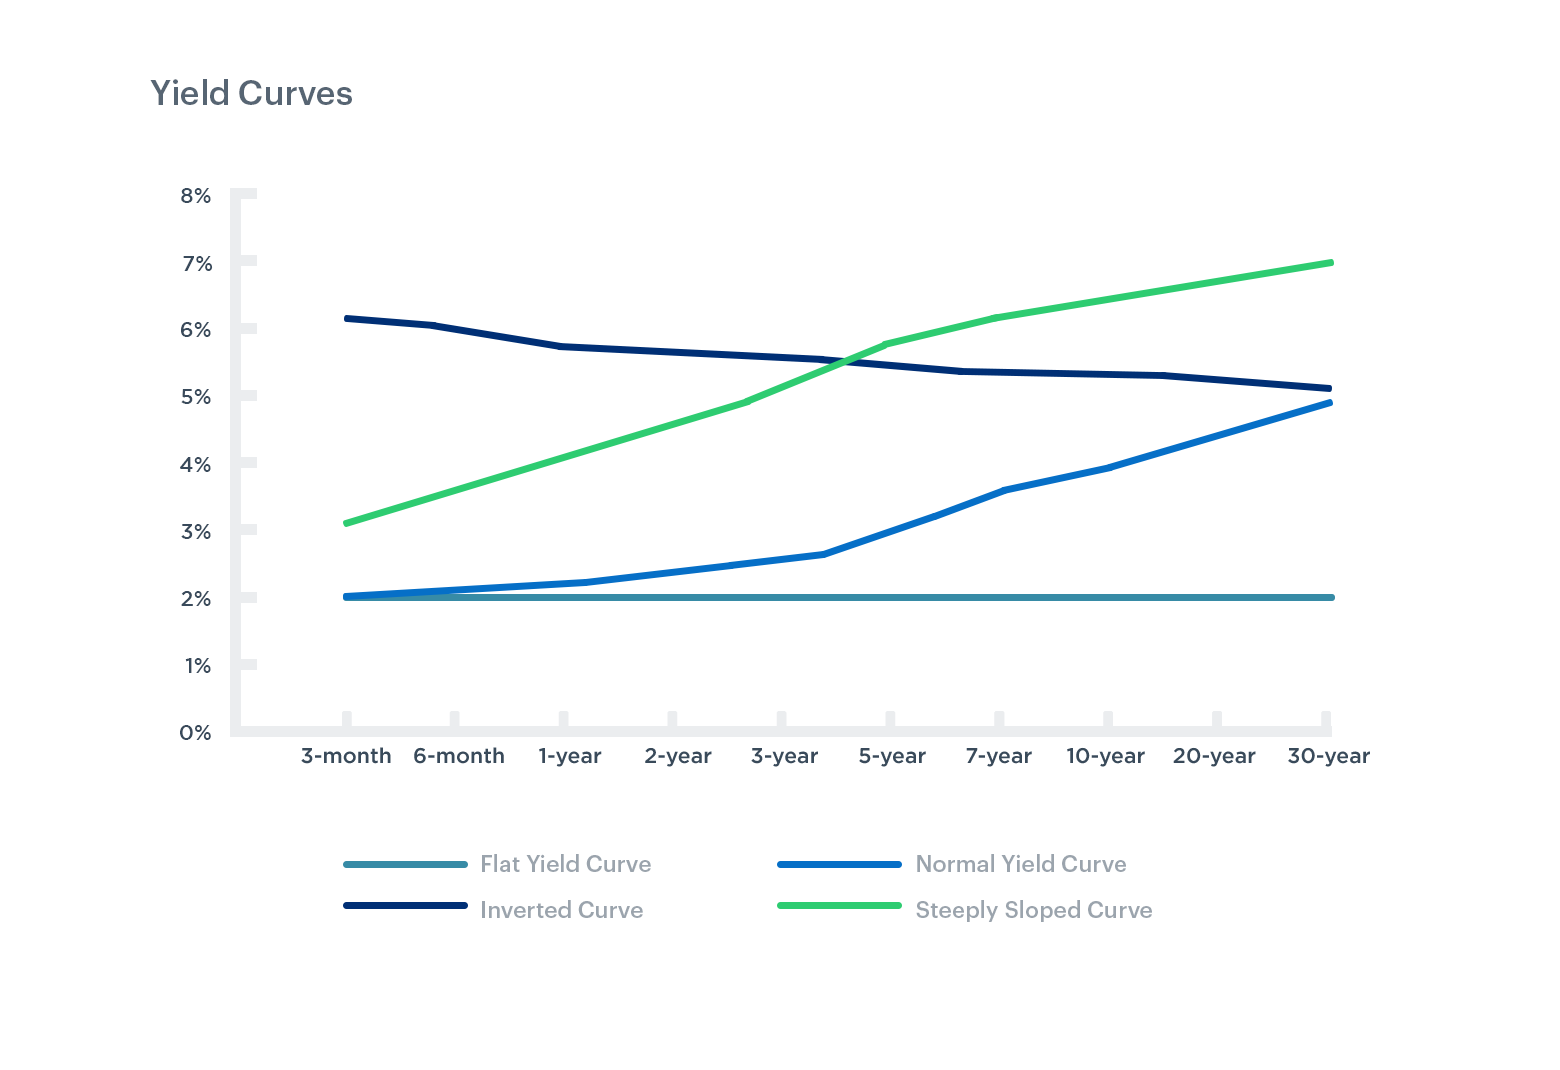 Image with yield curve examples showing flat, normal, inverted, and steep yield curves